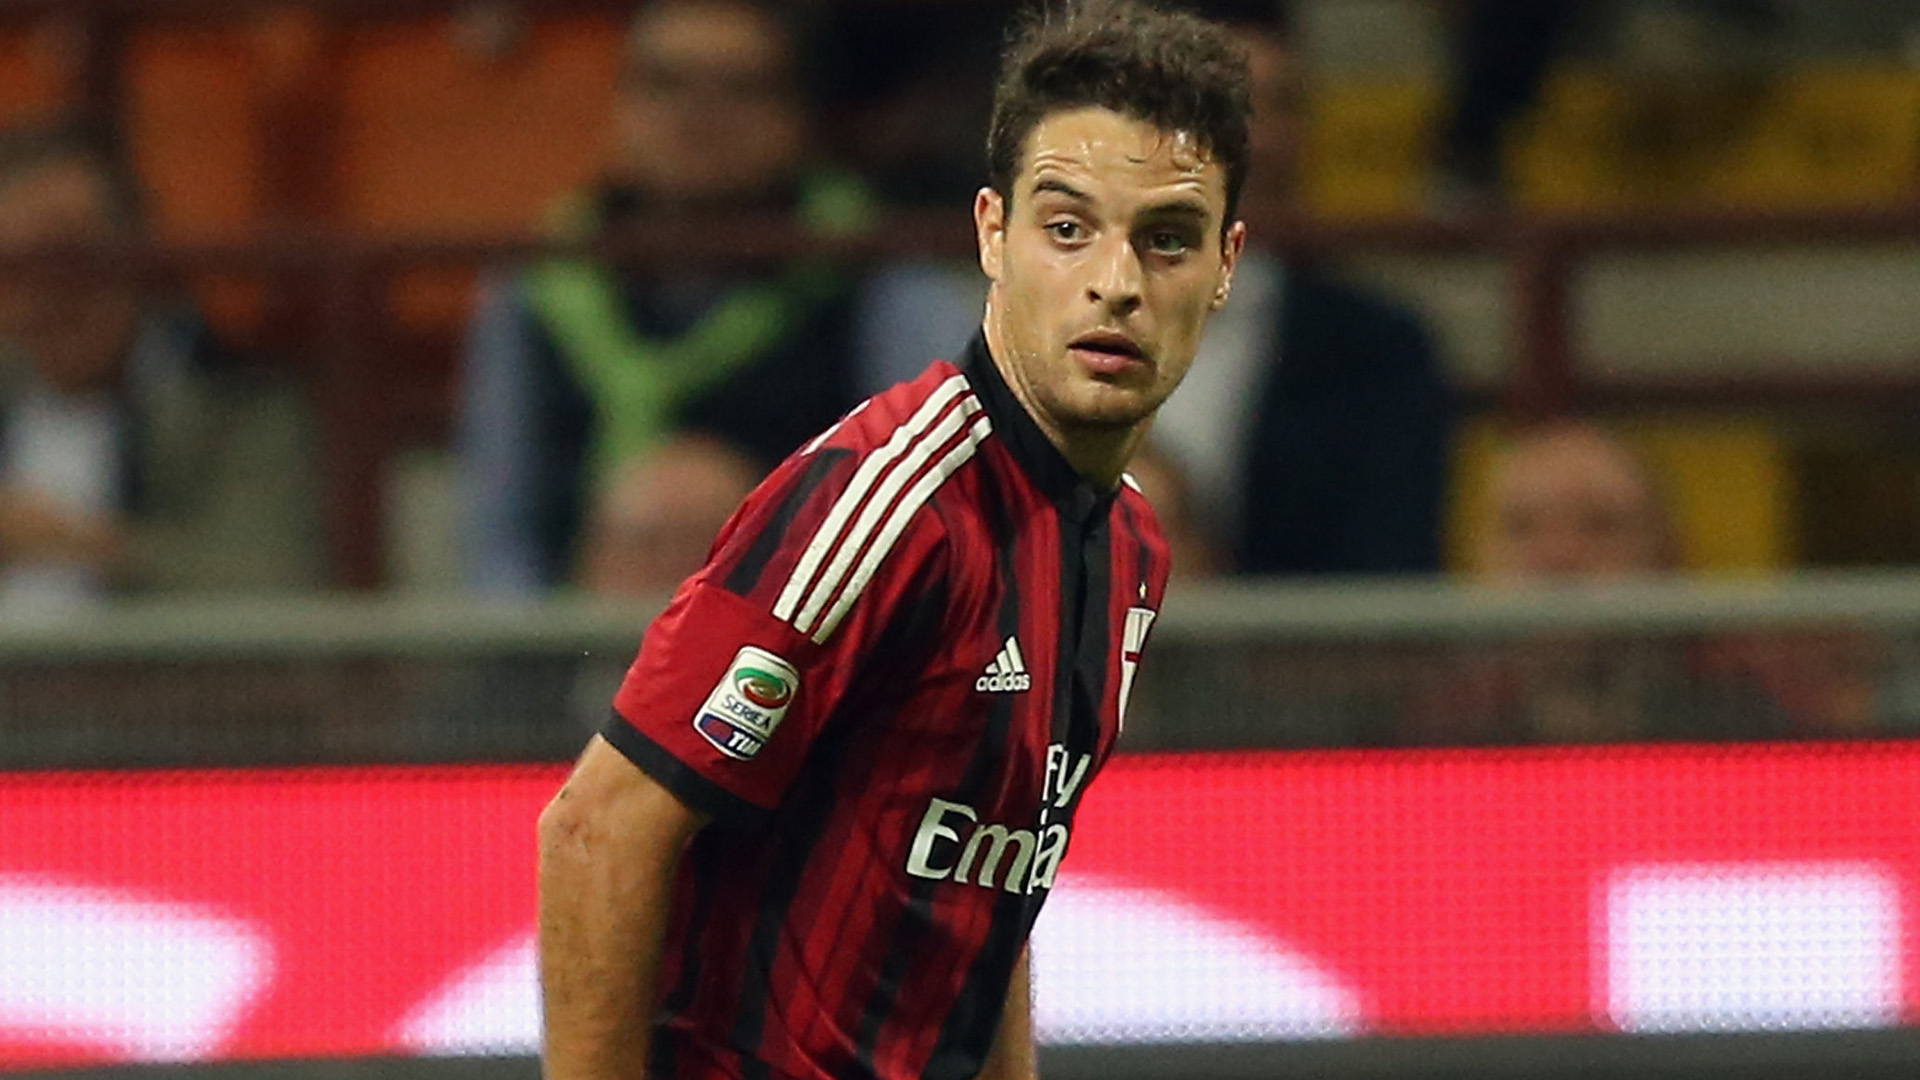 MILAN, ITALY - OCTOBER 04: Giacomo Bonaventura of Milan during the Serie A match between AC Milan and AC Chievo Verona at Stadio Giuseppe Meazza on October 4, 2014 in Milan, Italy.  (Photo by Maurizio Lagana/Getty Images)